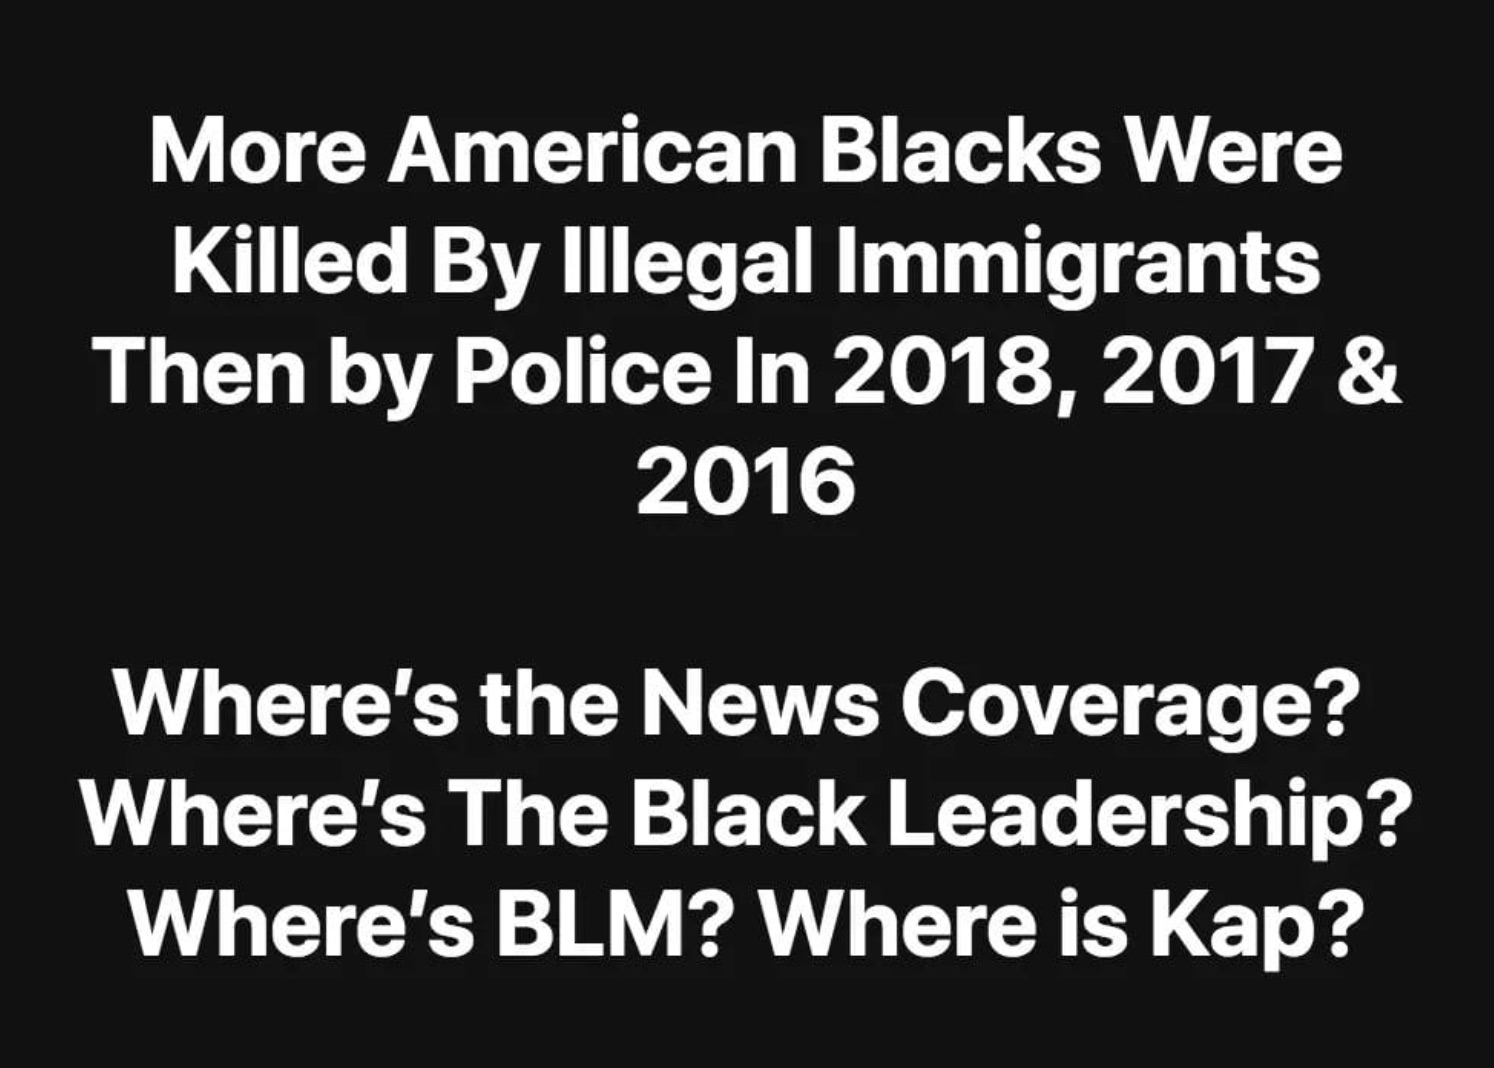 more-american-blacks-were-killed-by-illegal-immigrants-than-police